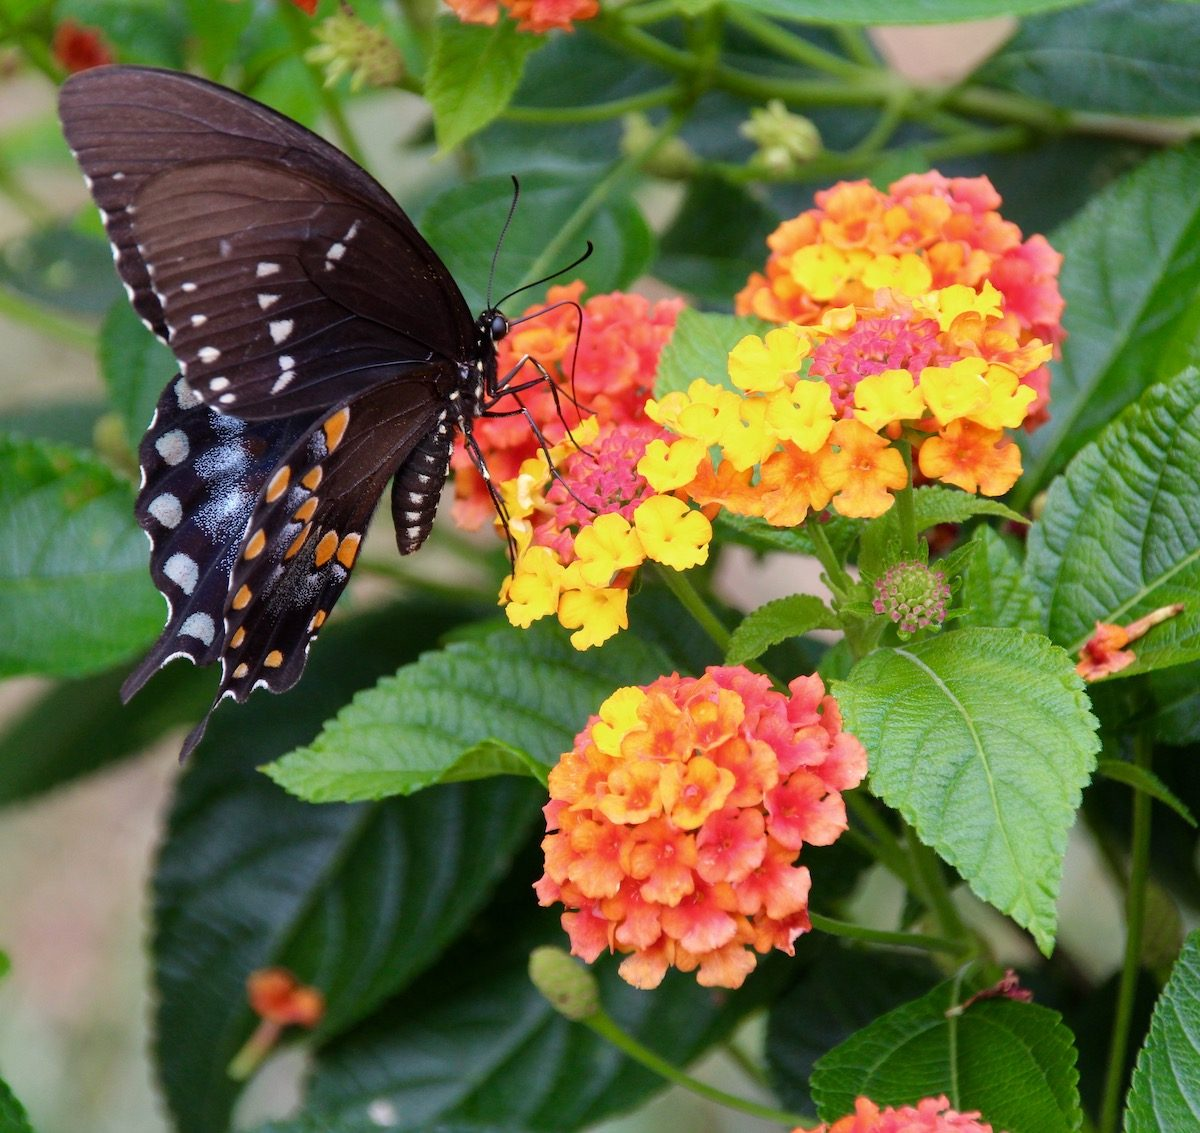 lantana and Eastern black swallowtail butterfly